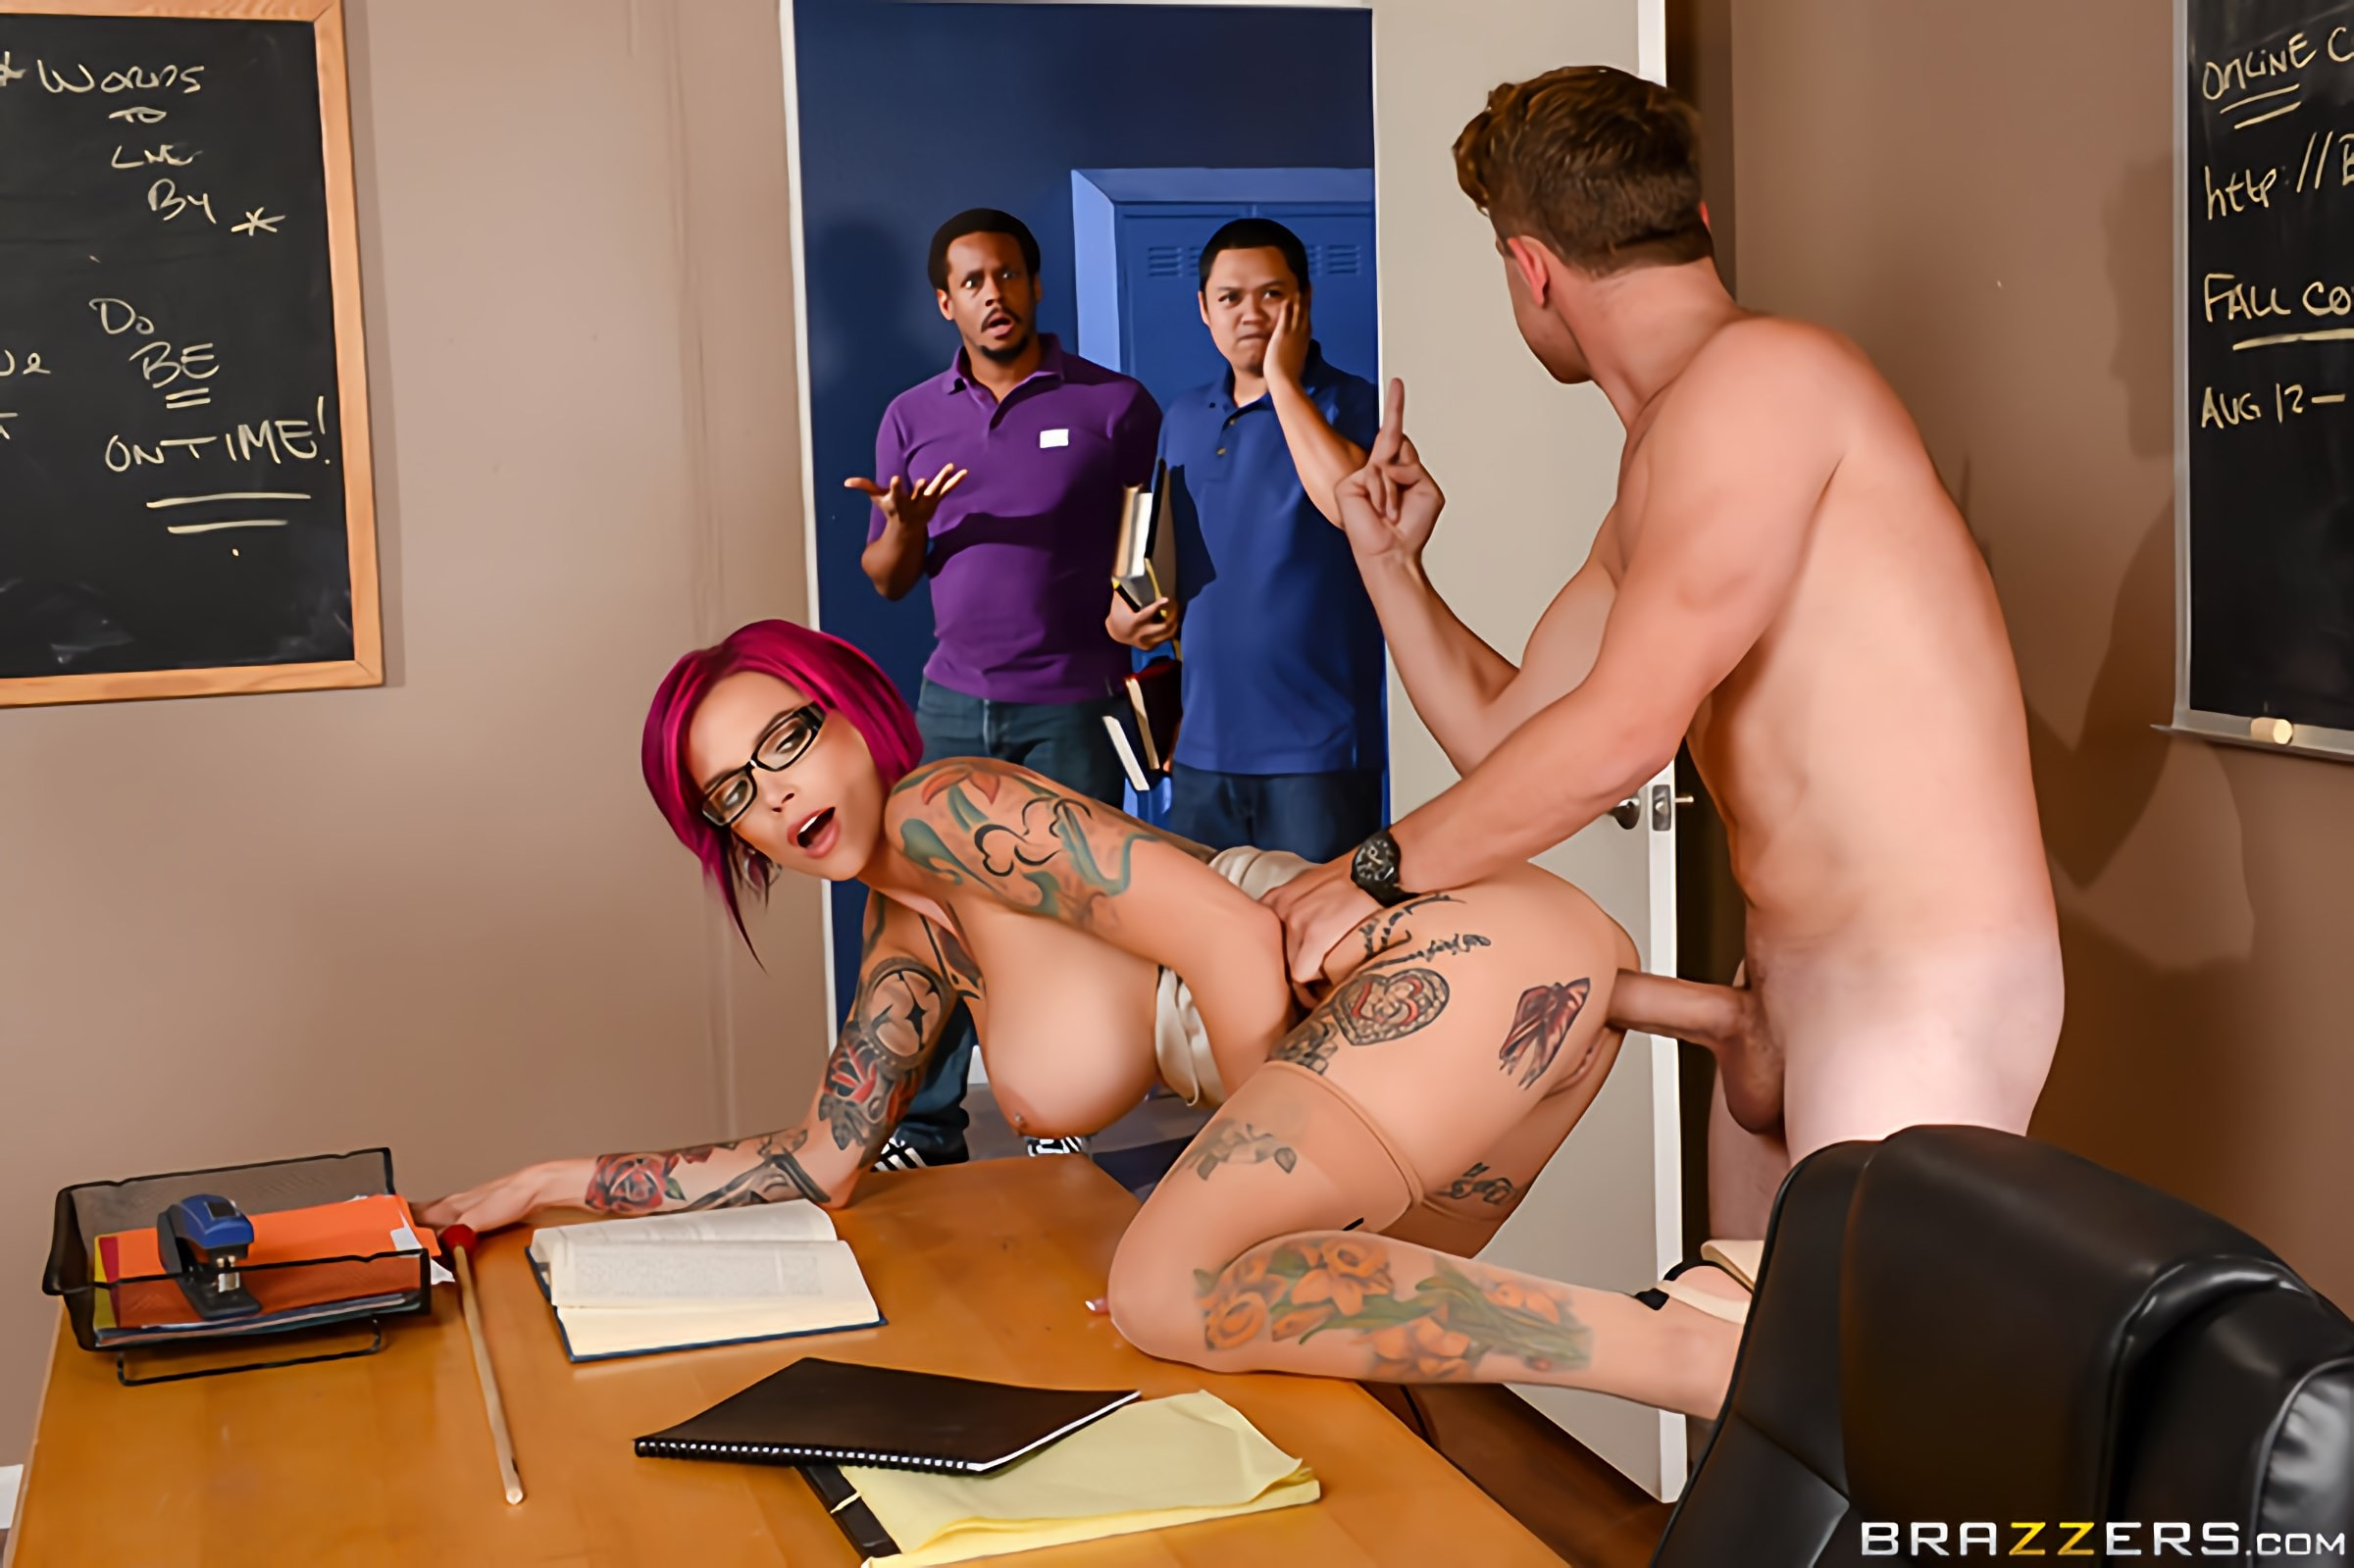 Brazzers 'Sexy Pictures Worth A Thousand Words' starring Anna Bell Peaks (Photo 2)